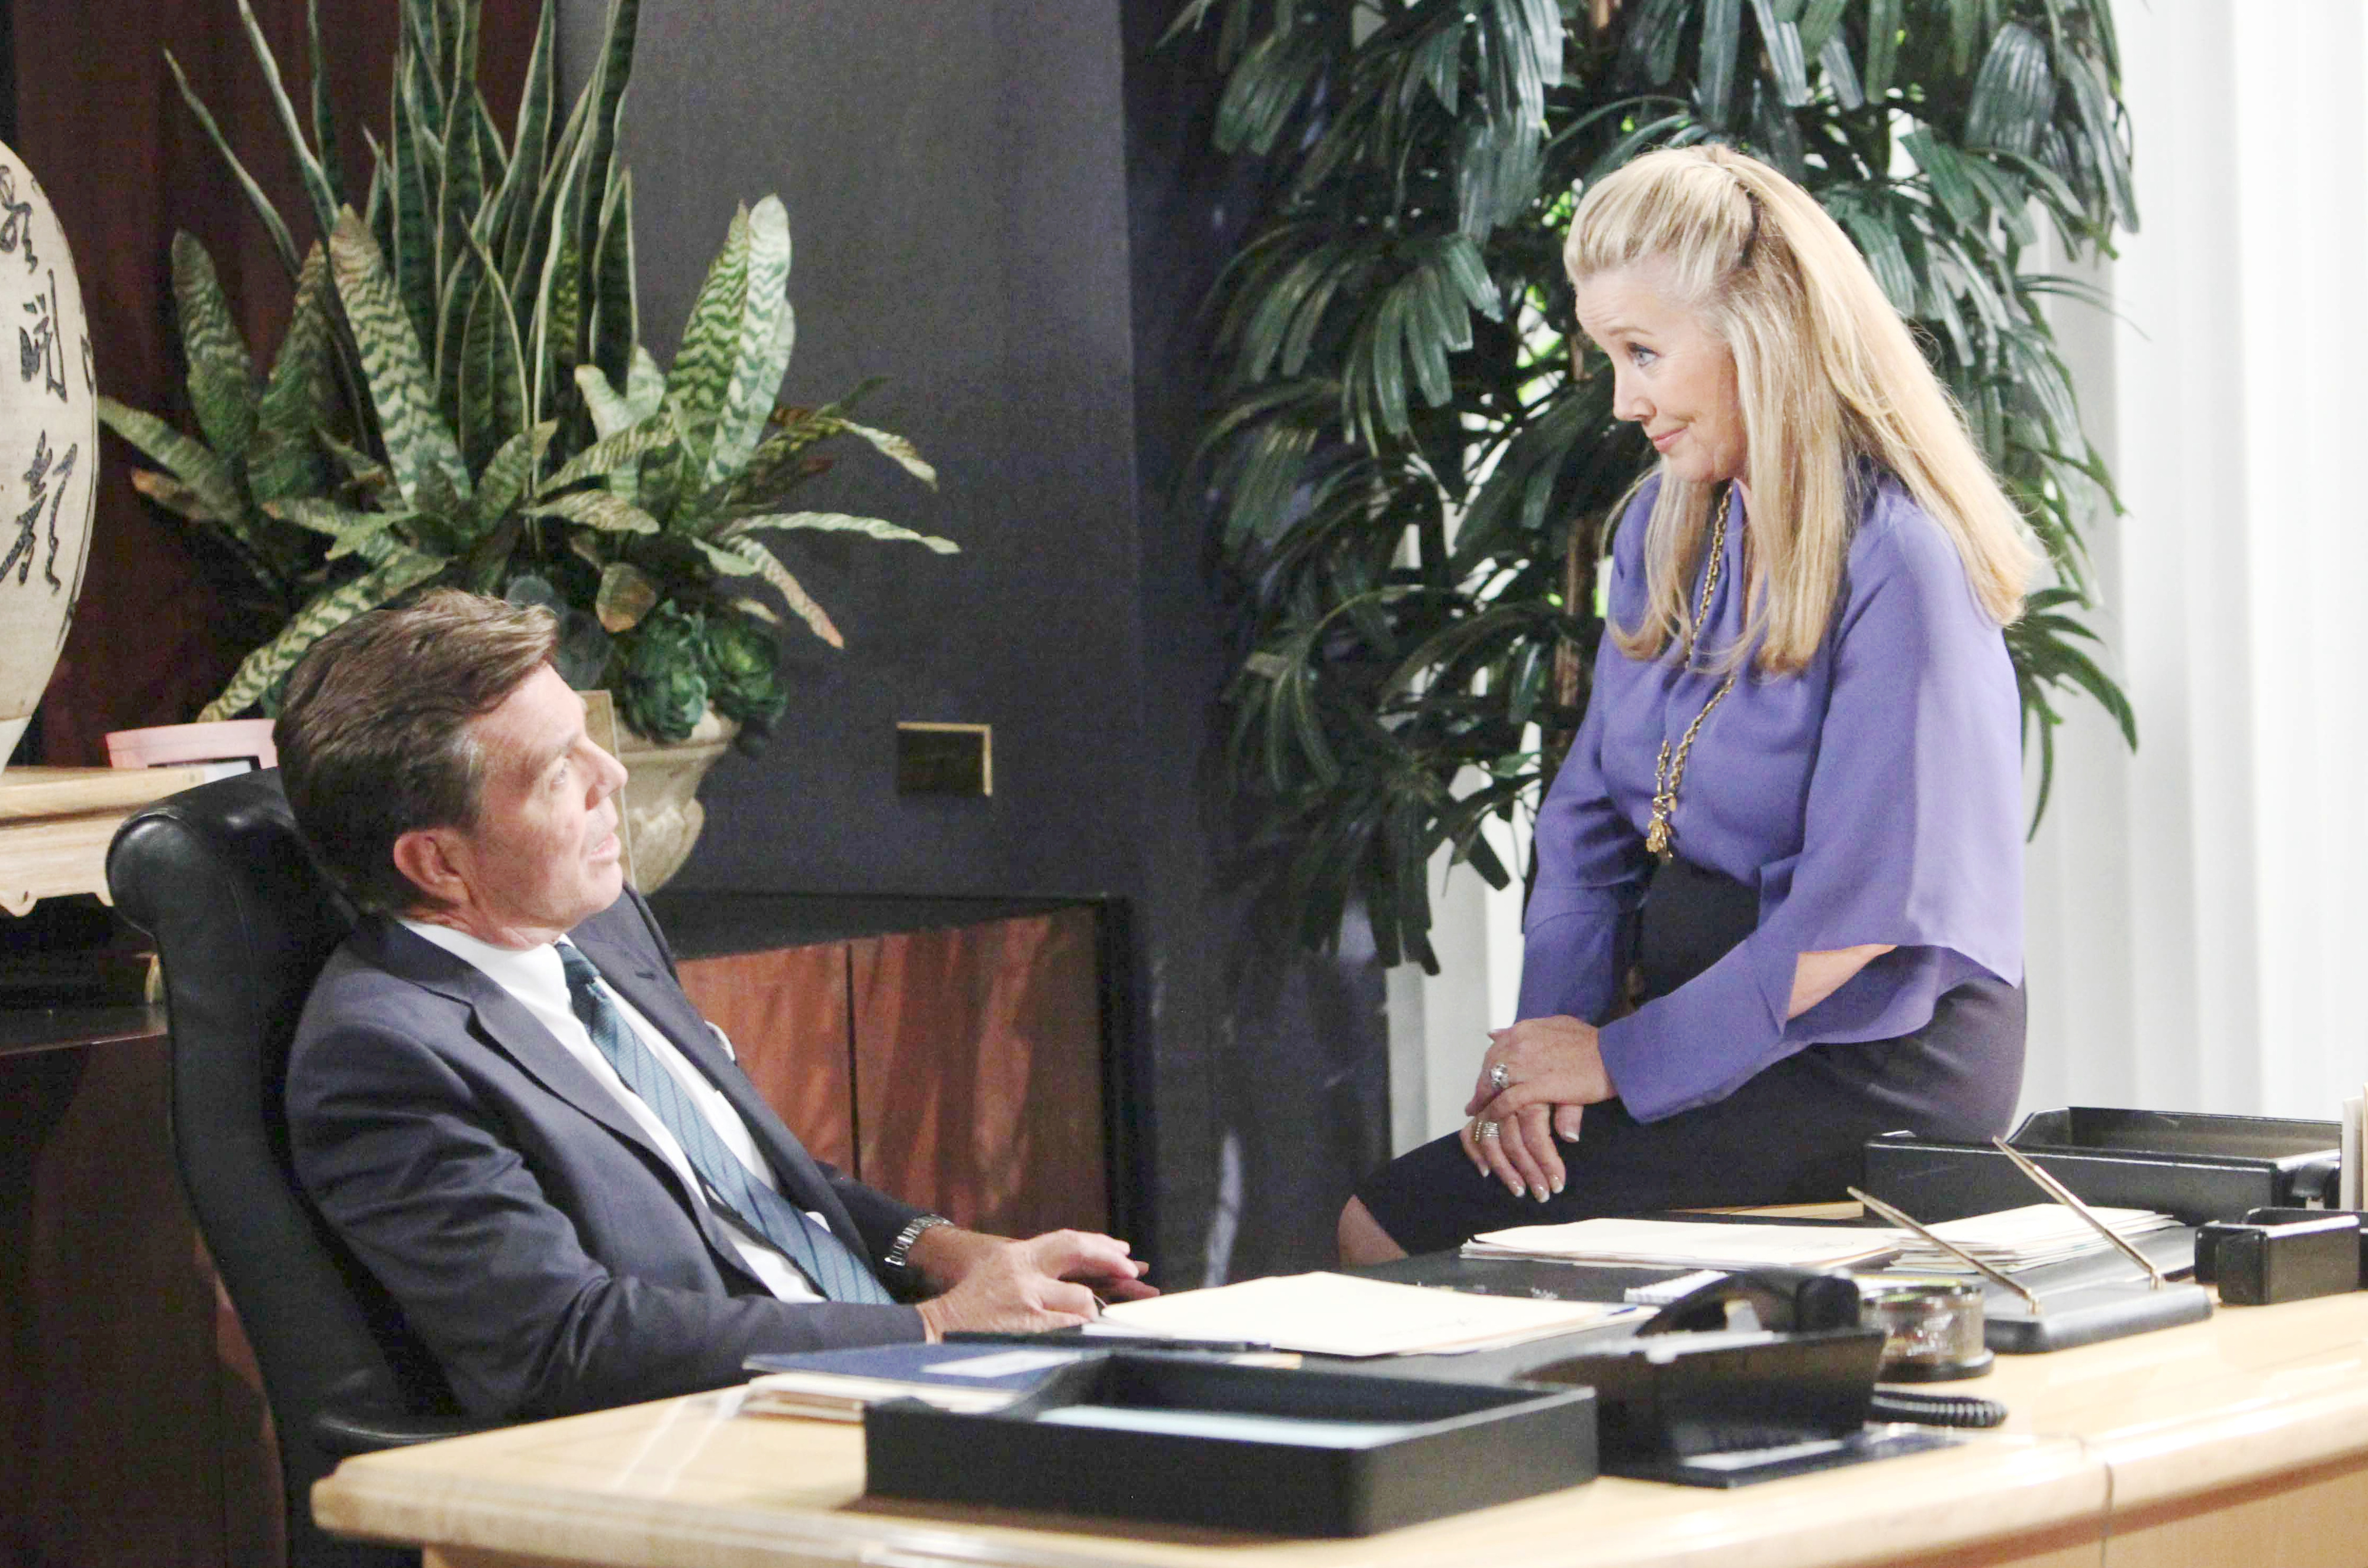 Y&R Spoilers: Jack reevaluates his relationship with Nikki.